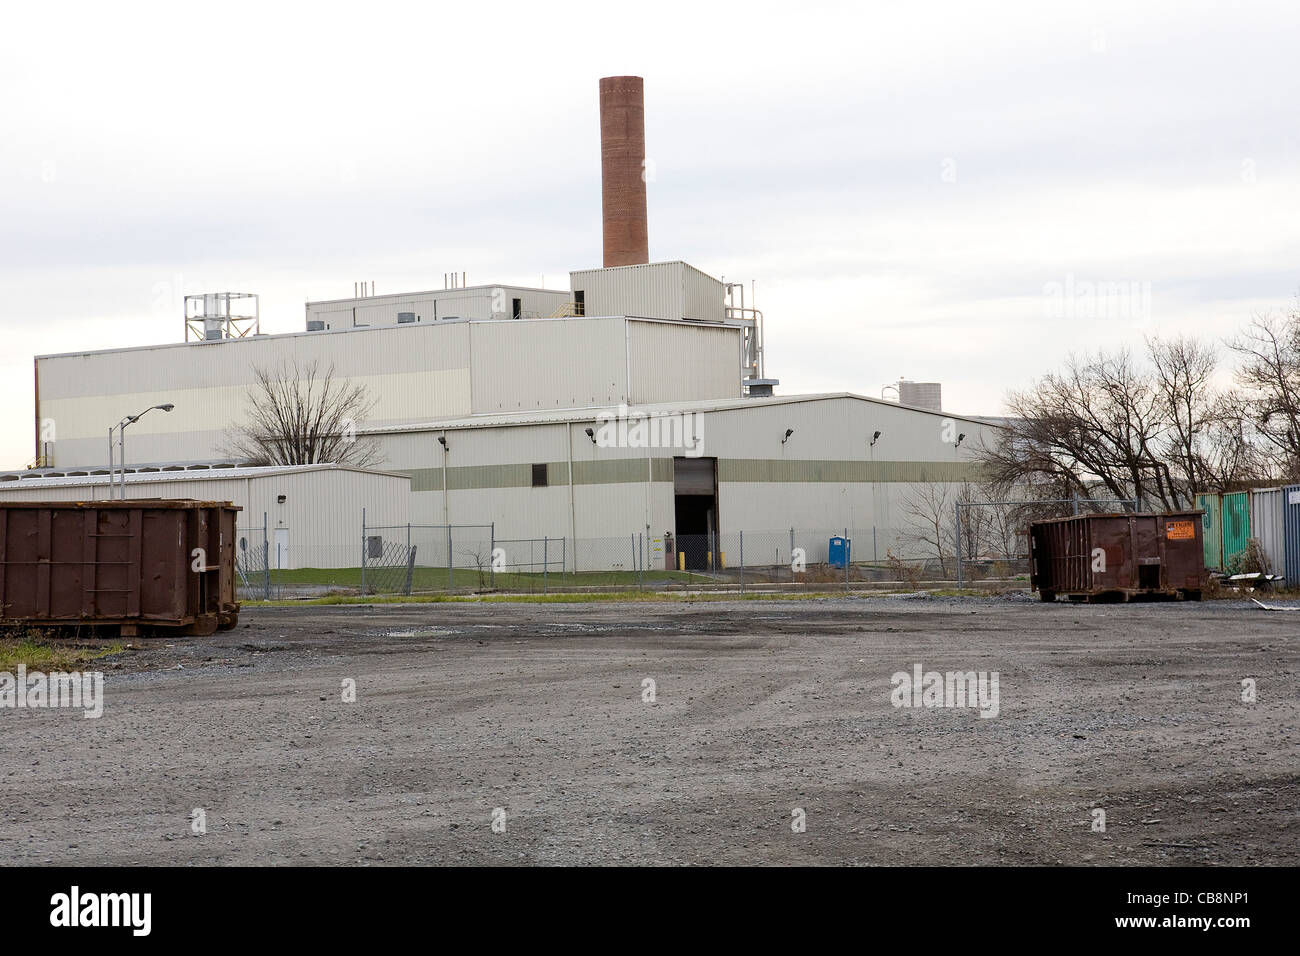 A view of the Harrisburg, Pennsylvania trash incinerator.  - Stock Image